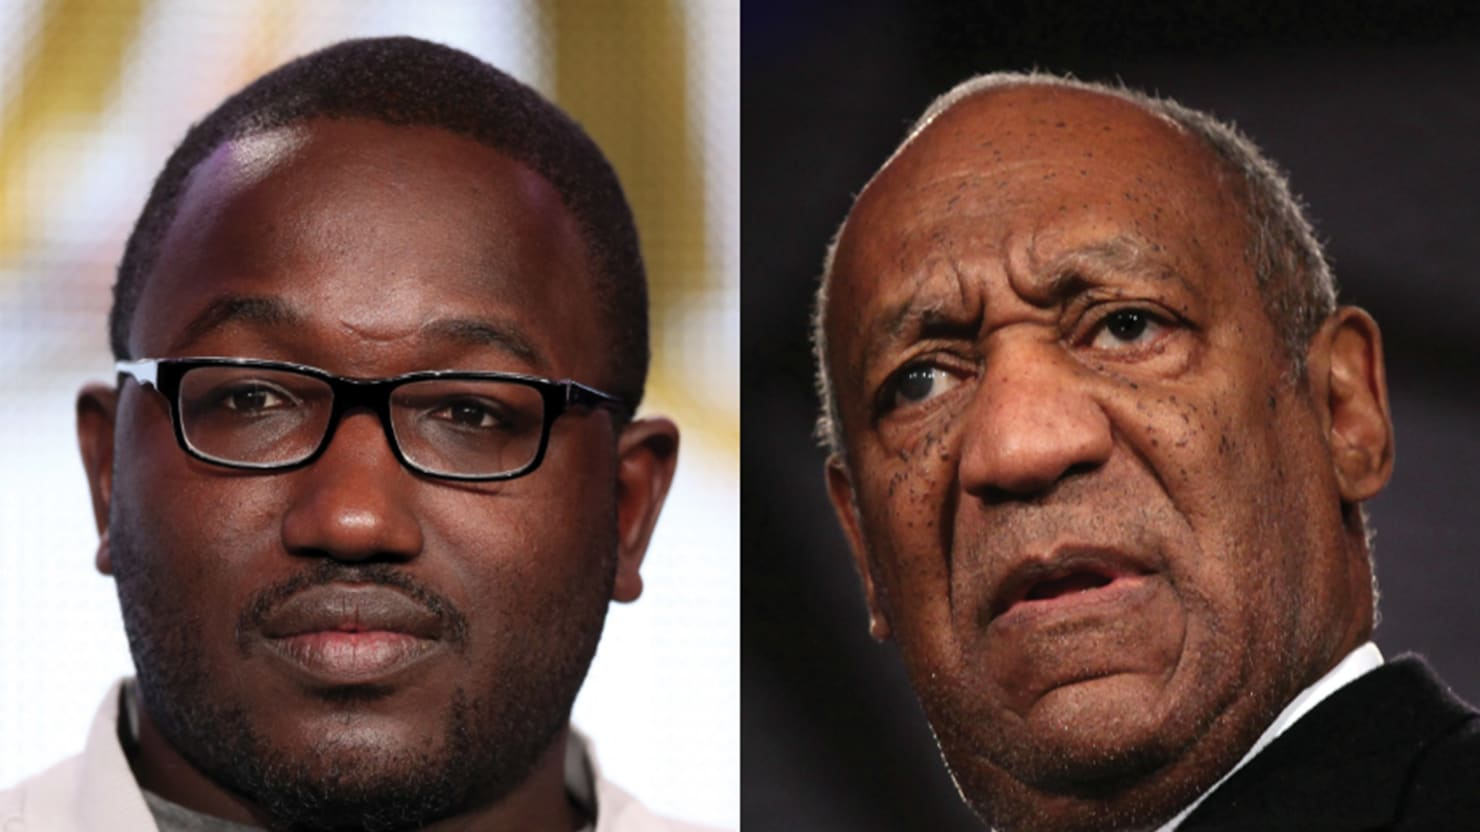 Hannibal Buress Says Bill Cosby Is A Rapist A History Of